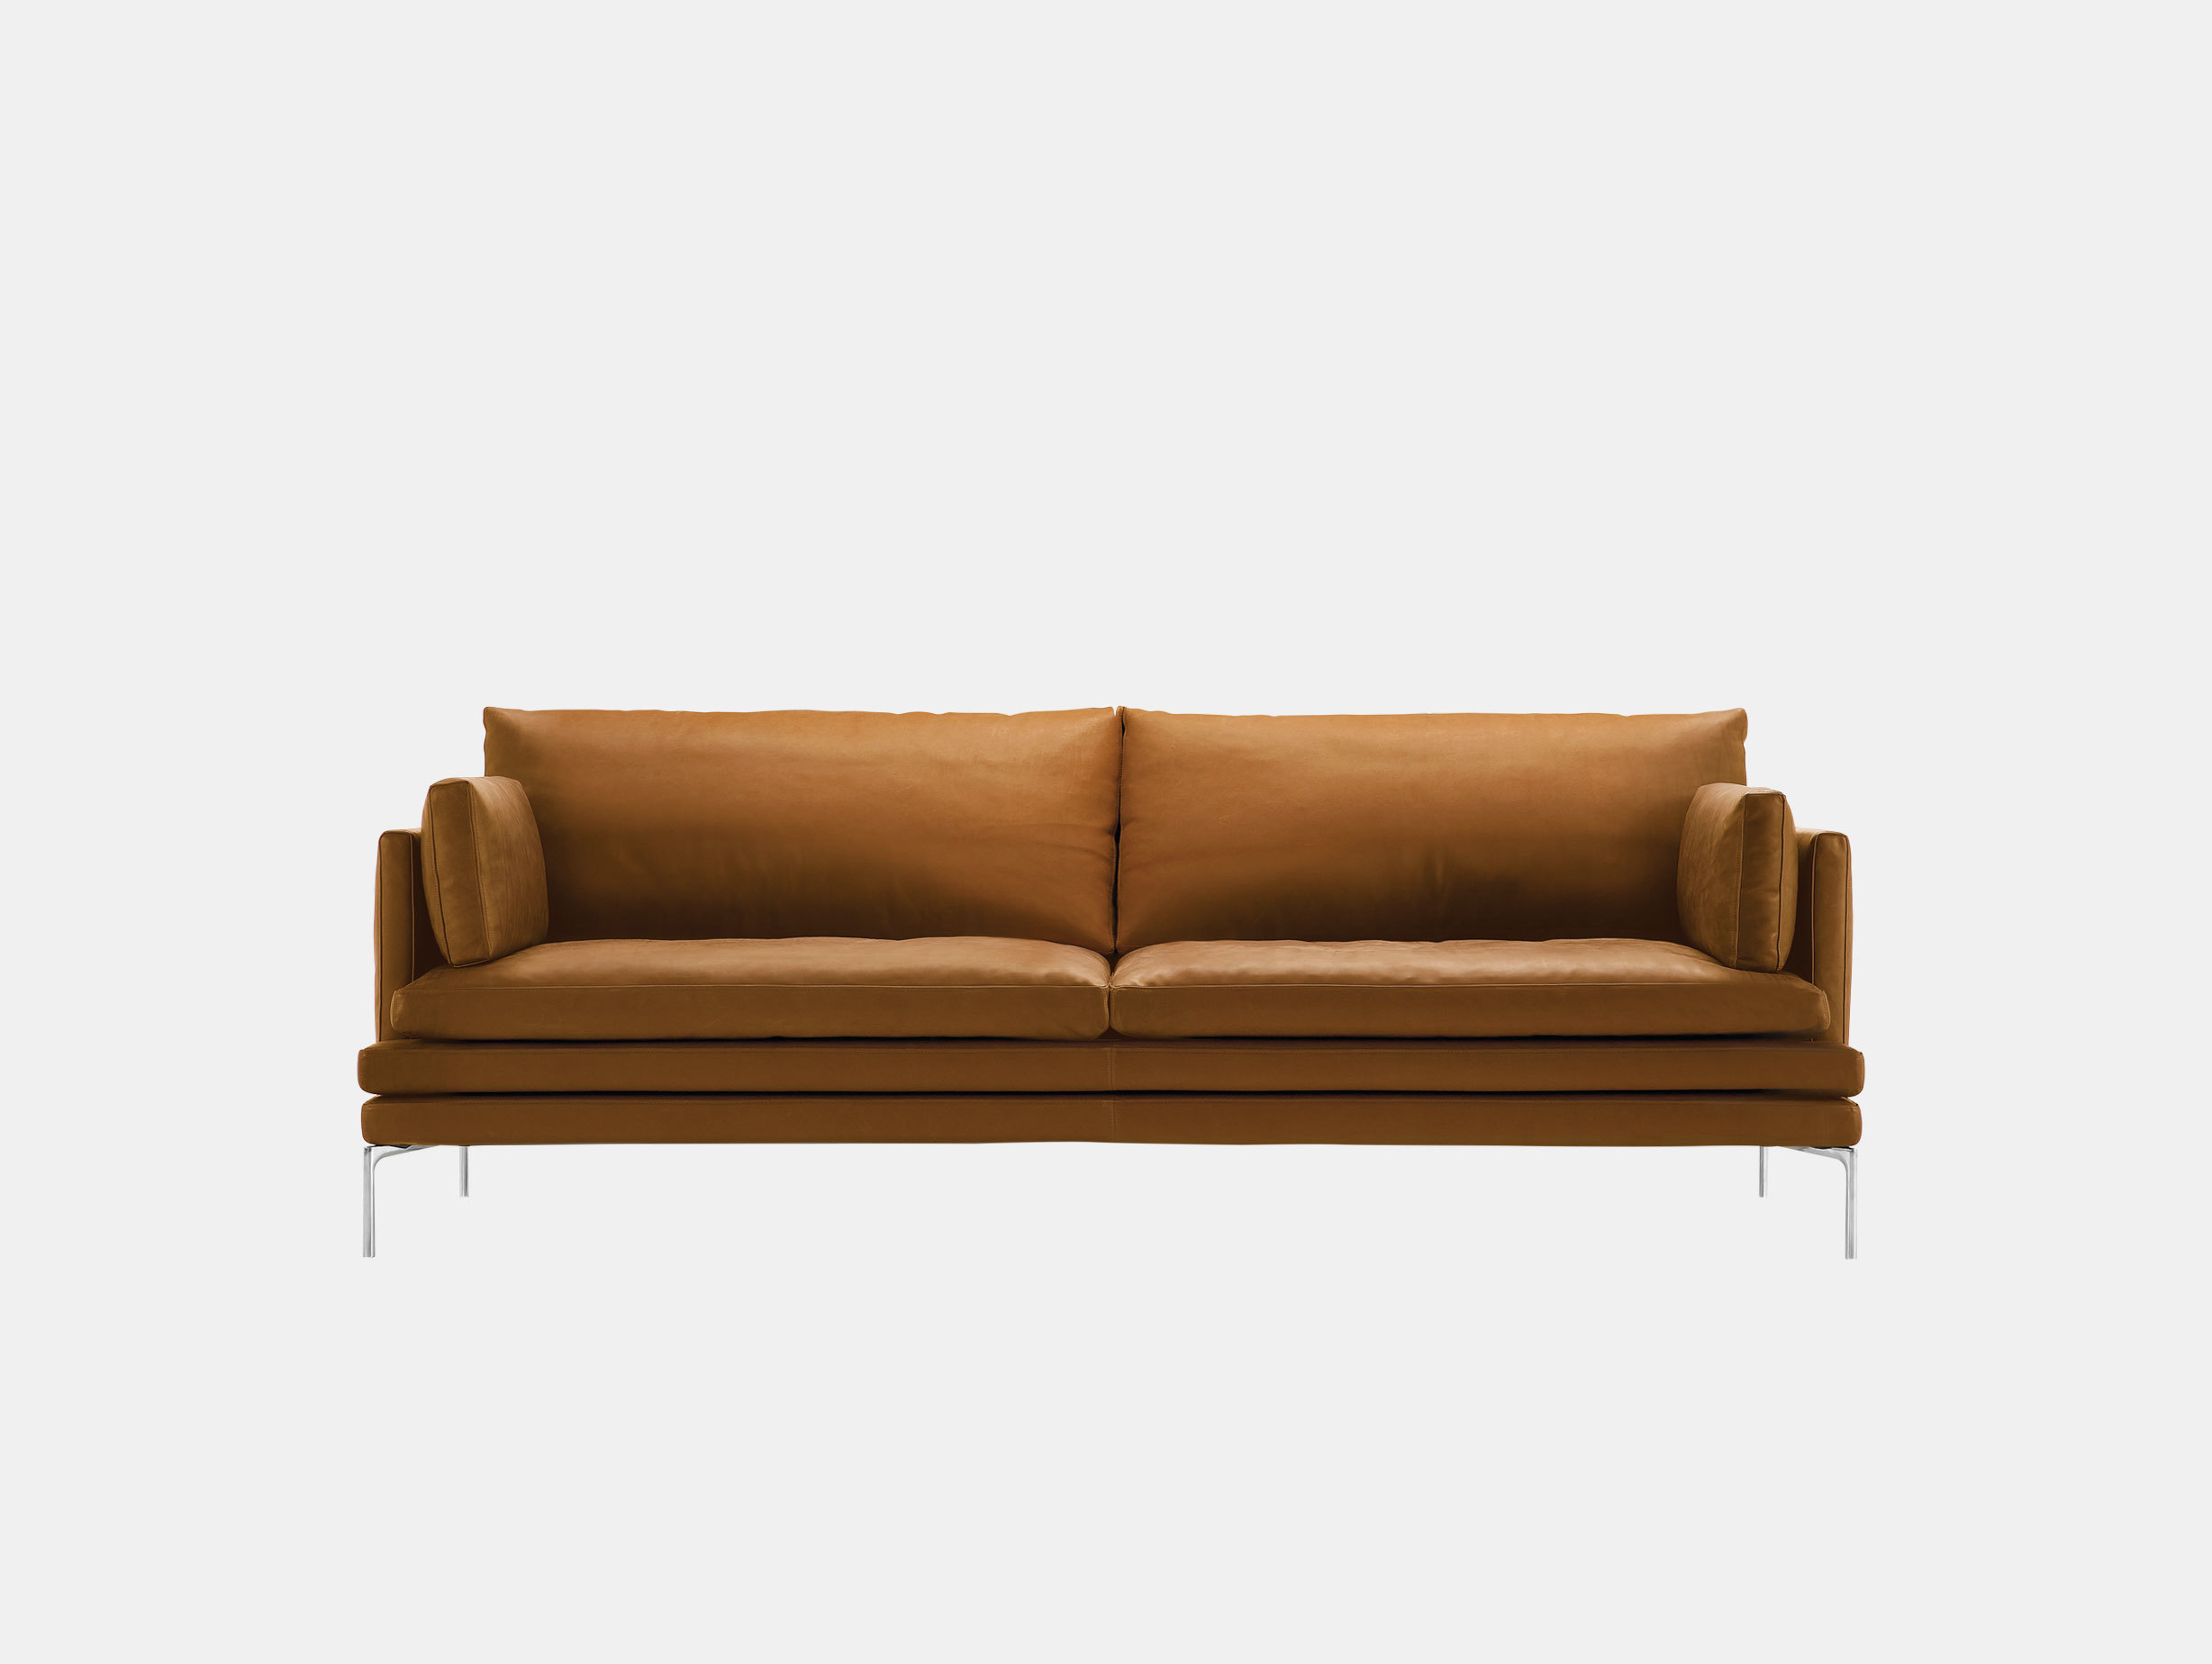 Zanotta William Three Seater Sofa L 224Cm Damian Williamson